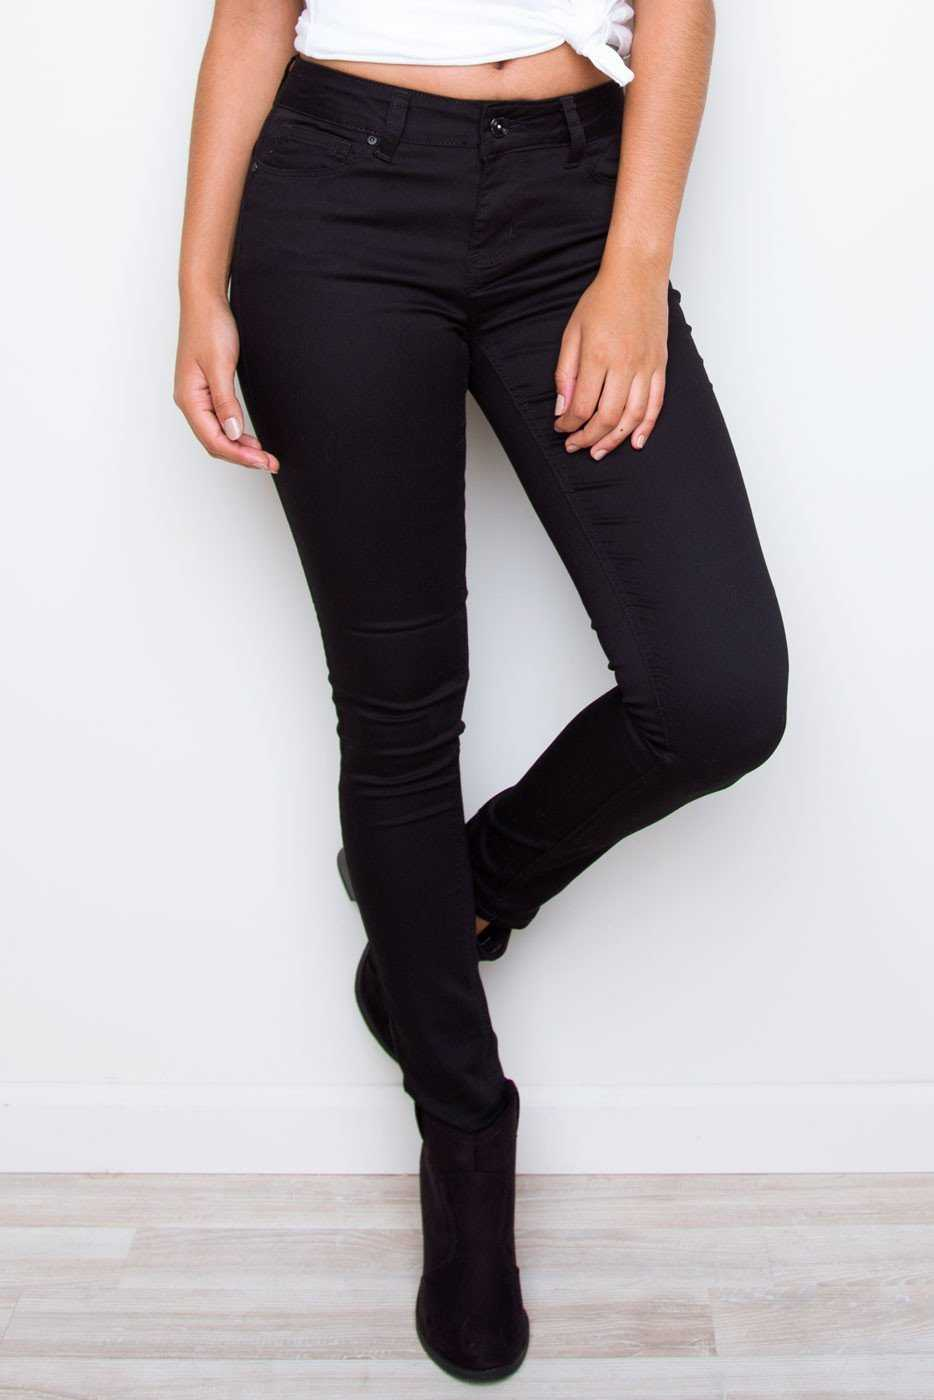 Pants - Insider Skinny Lifter Jeans - Black